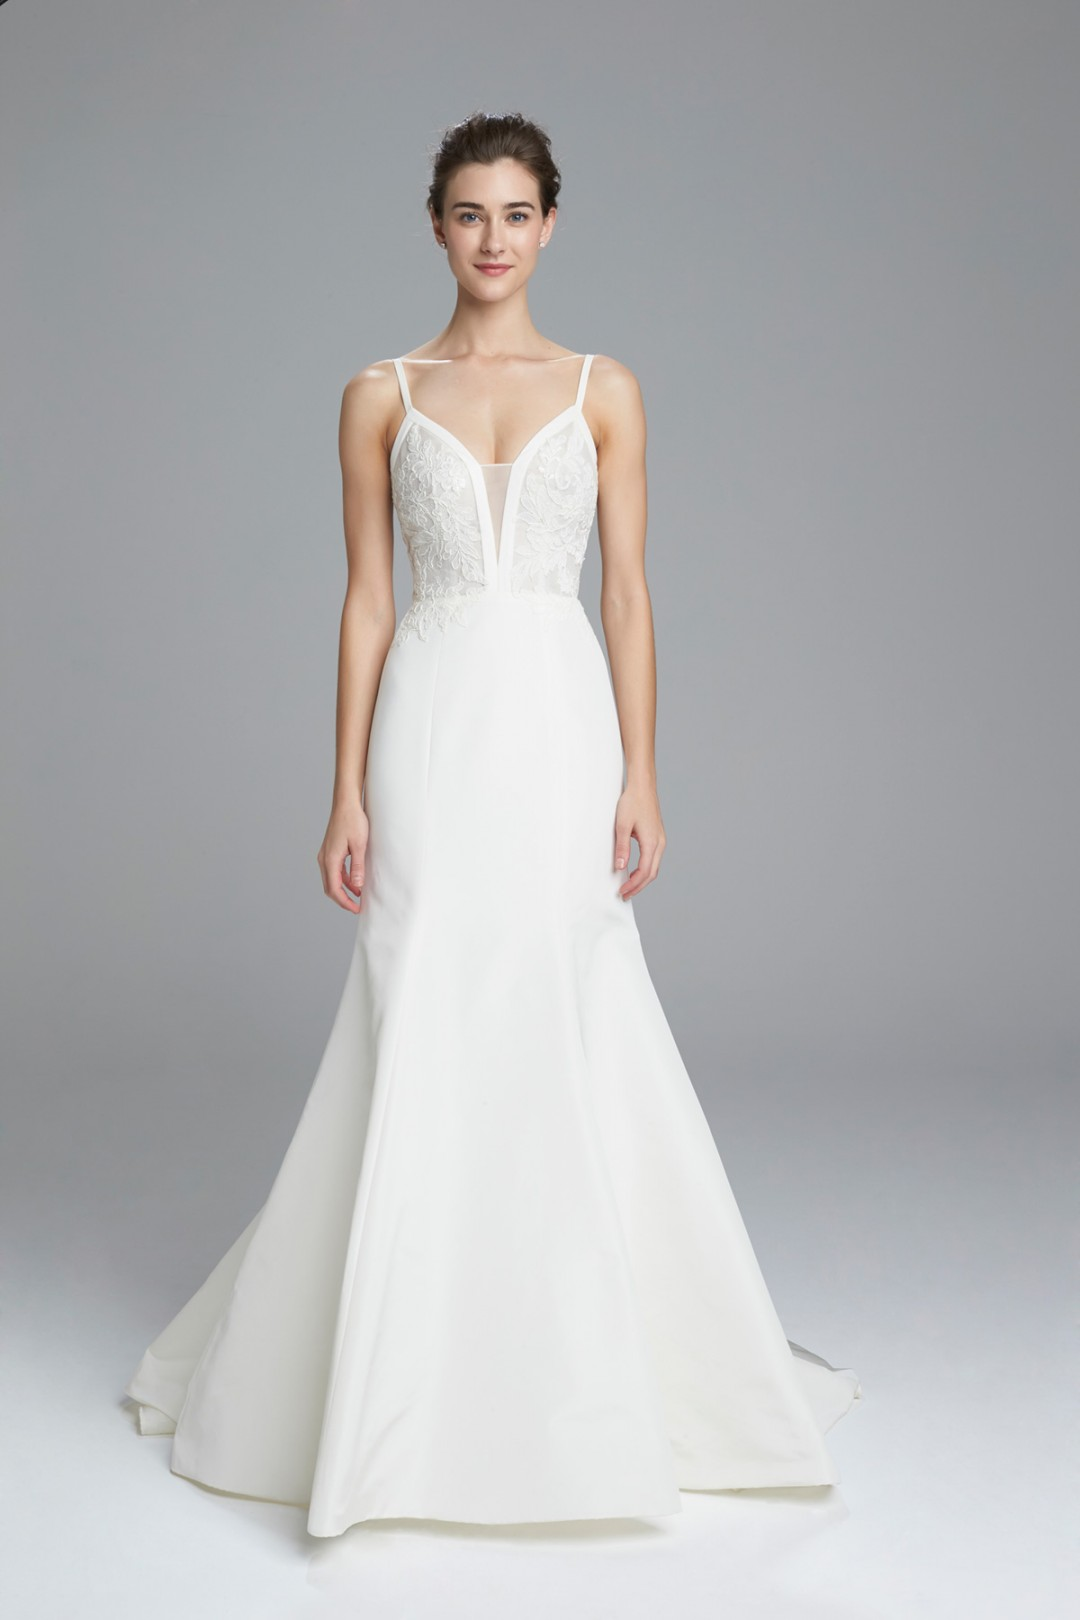 Slim-fit-to-flare-wedding-dress-with-silk-organza-bodice-and-french-lace_Britt-by-Amsale-1080x1620.jpg